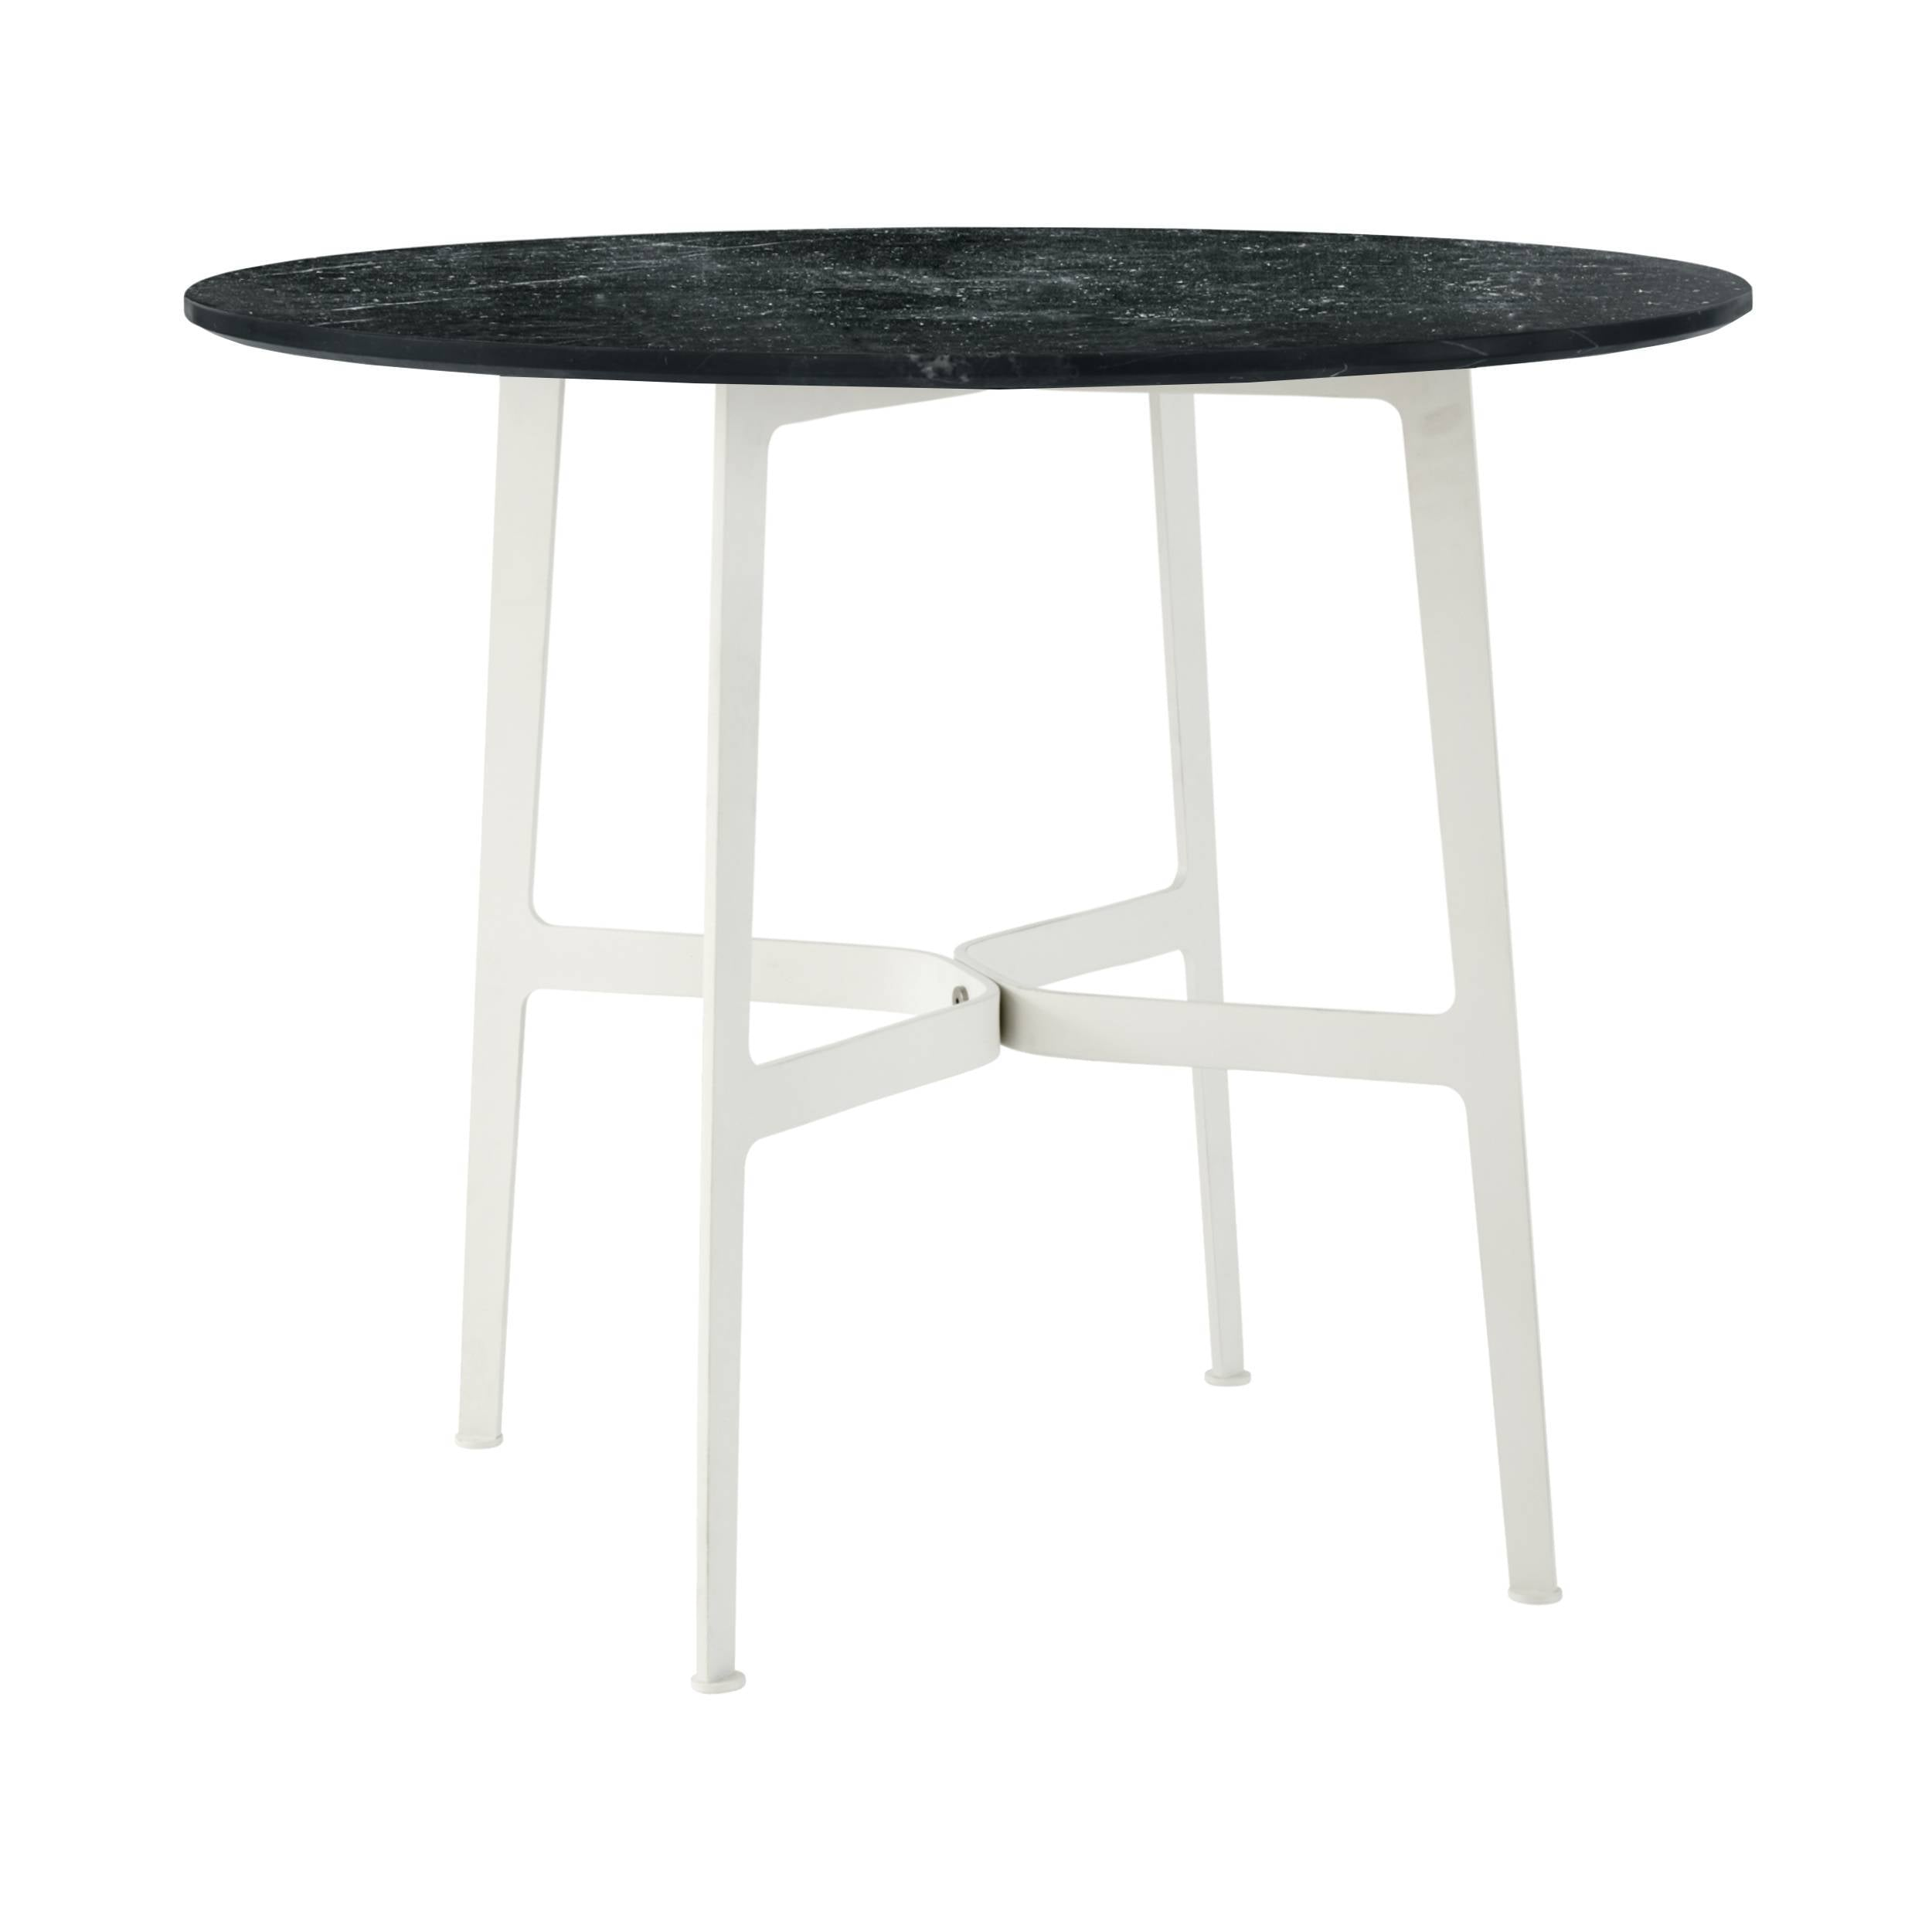 Eileen Circular Dining Table: Small + White + Black Marble